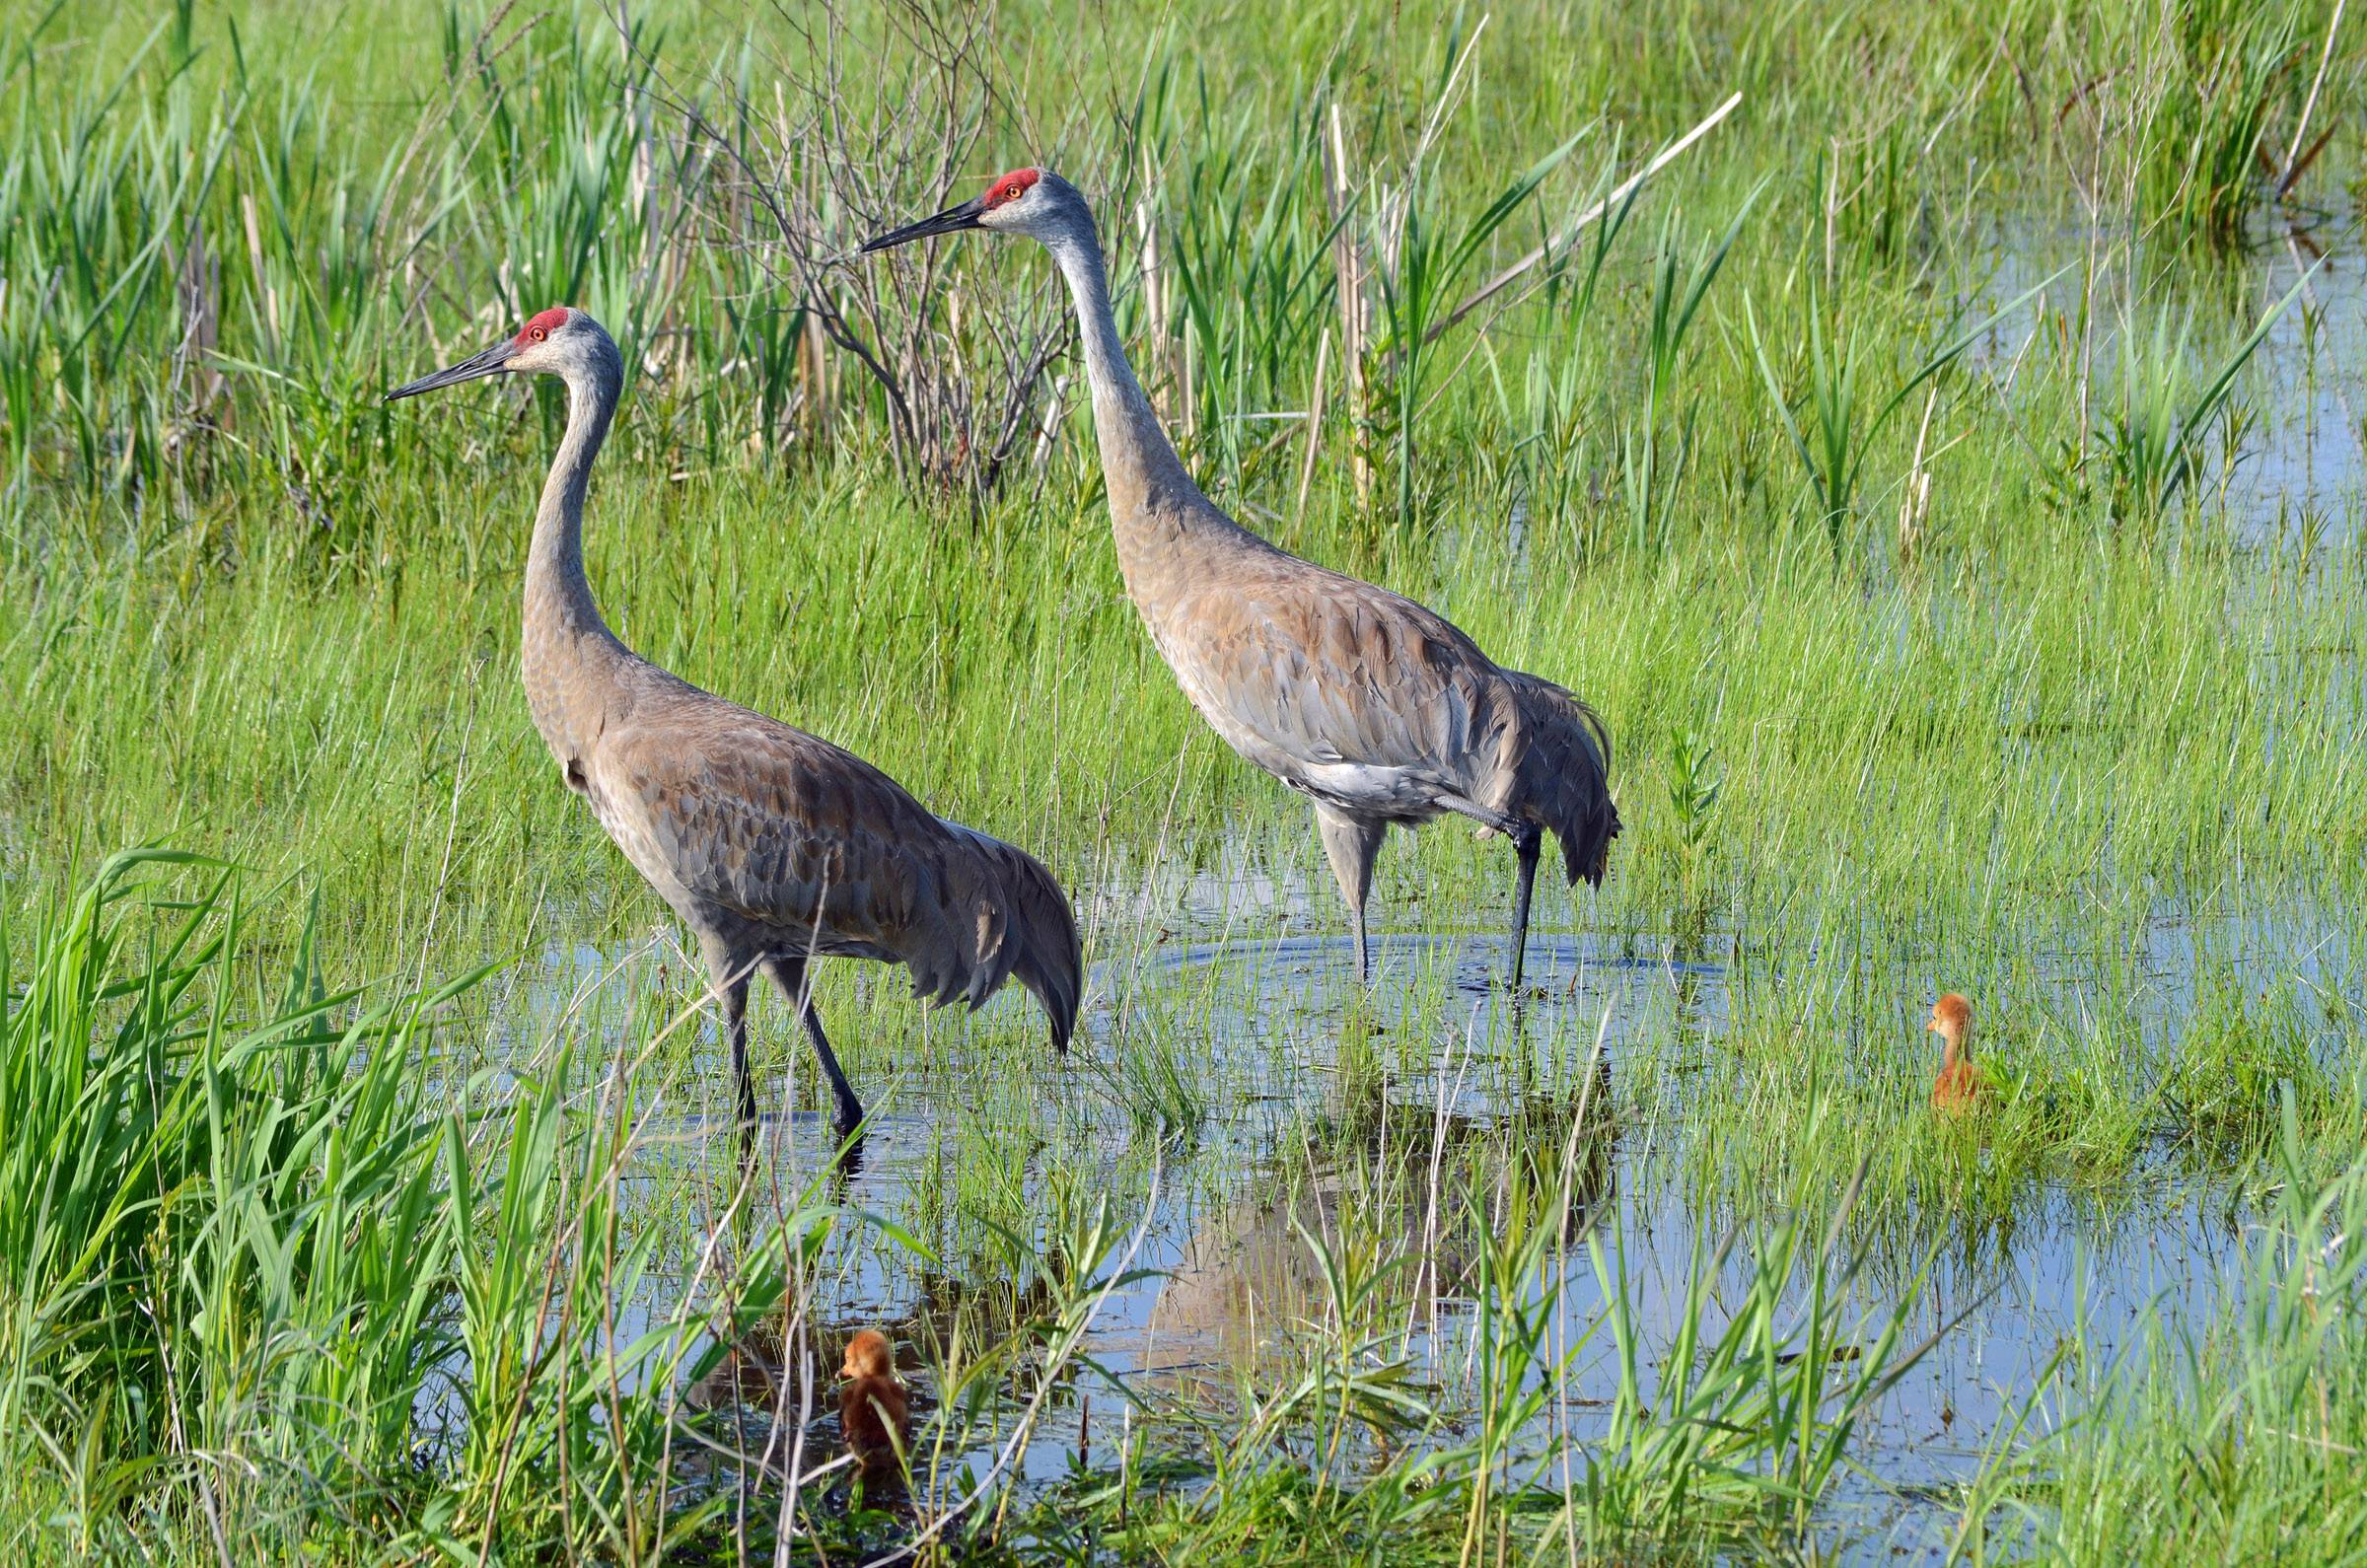 Two sandhill cranes and their chicks walk through the wetlands at Volo Bog on May 11.